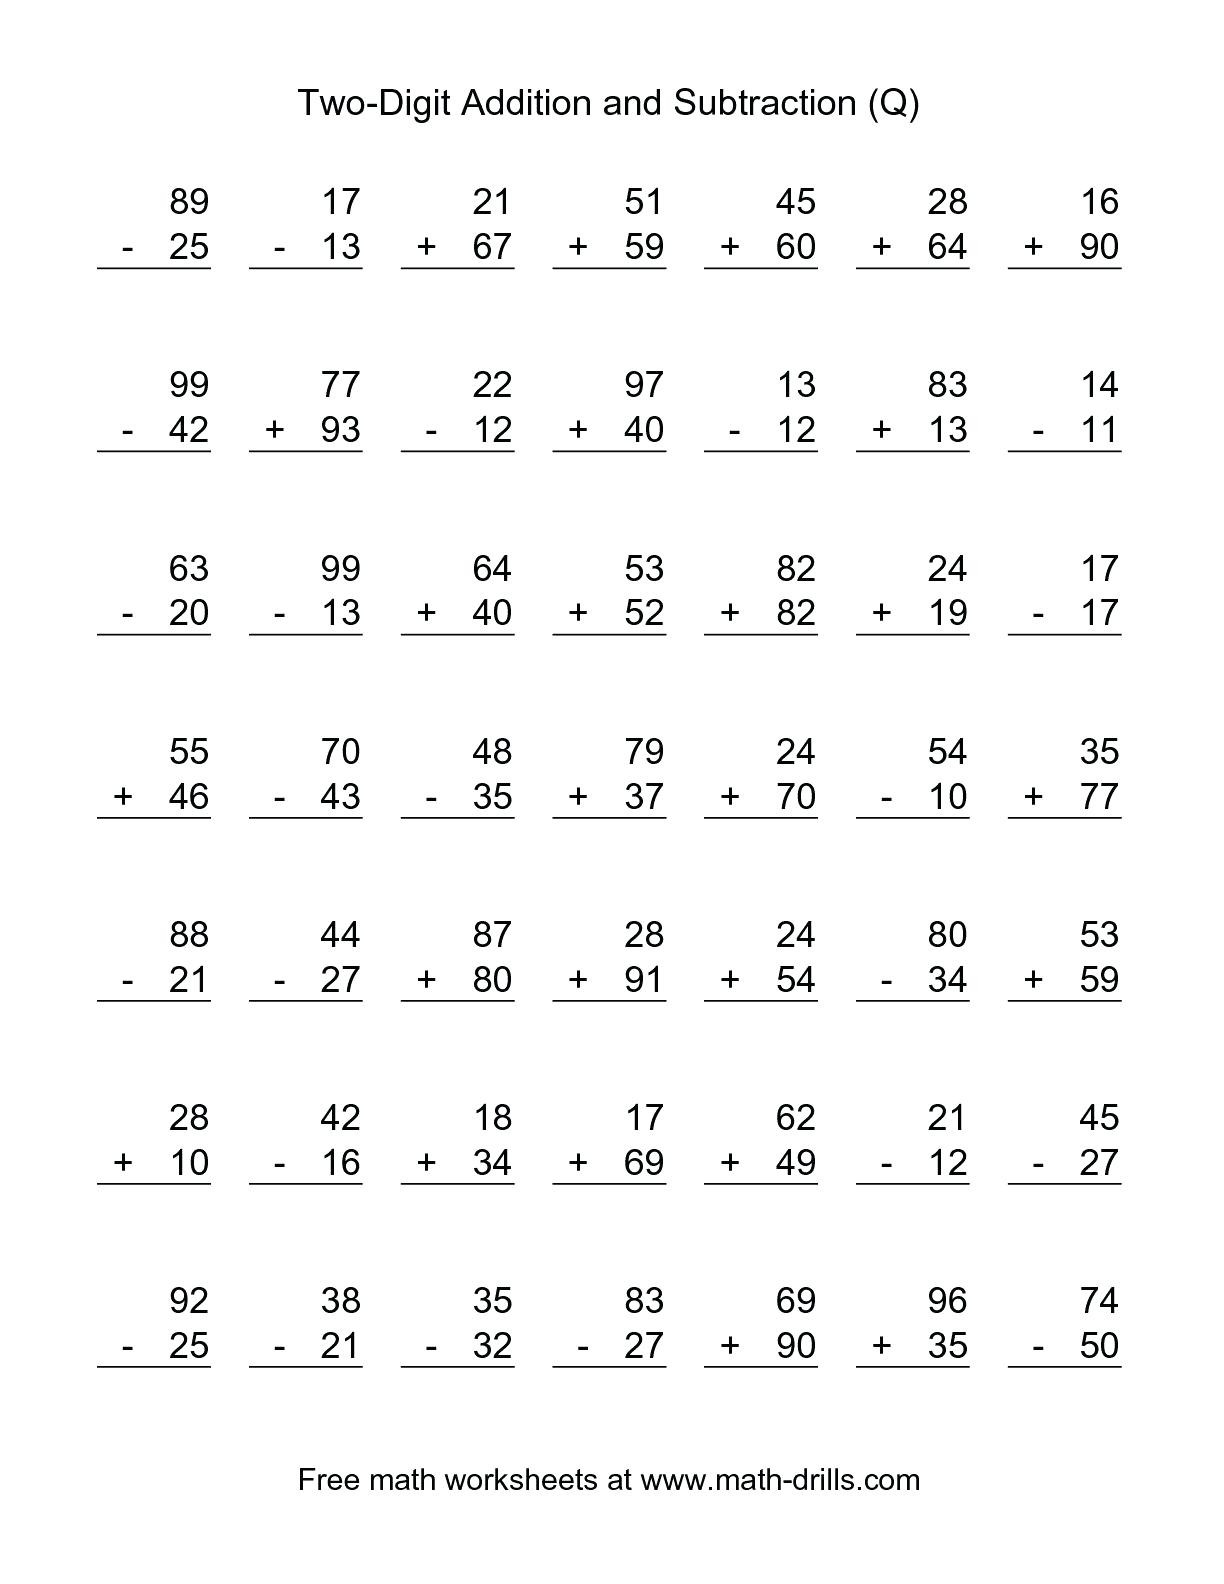 hight resolution of 4 Free Math Worksheets Second Grade 2 Addition Add 3 Digit Numbers In  Columns No Regrouping - apocalomegaproductions.com